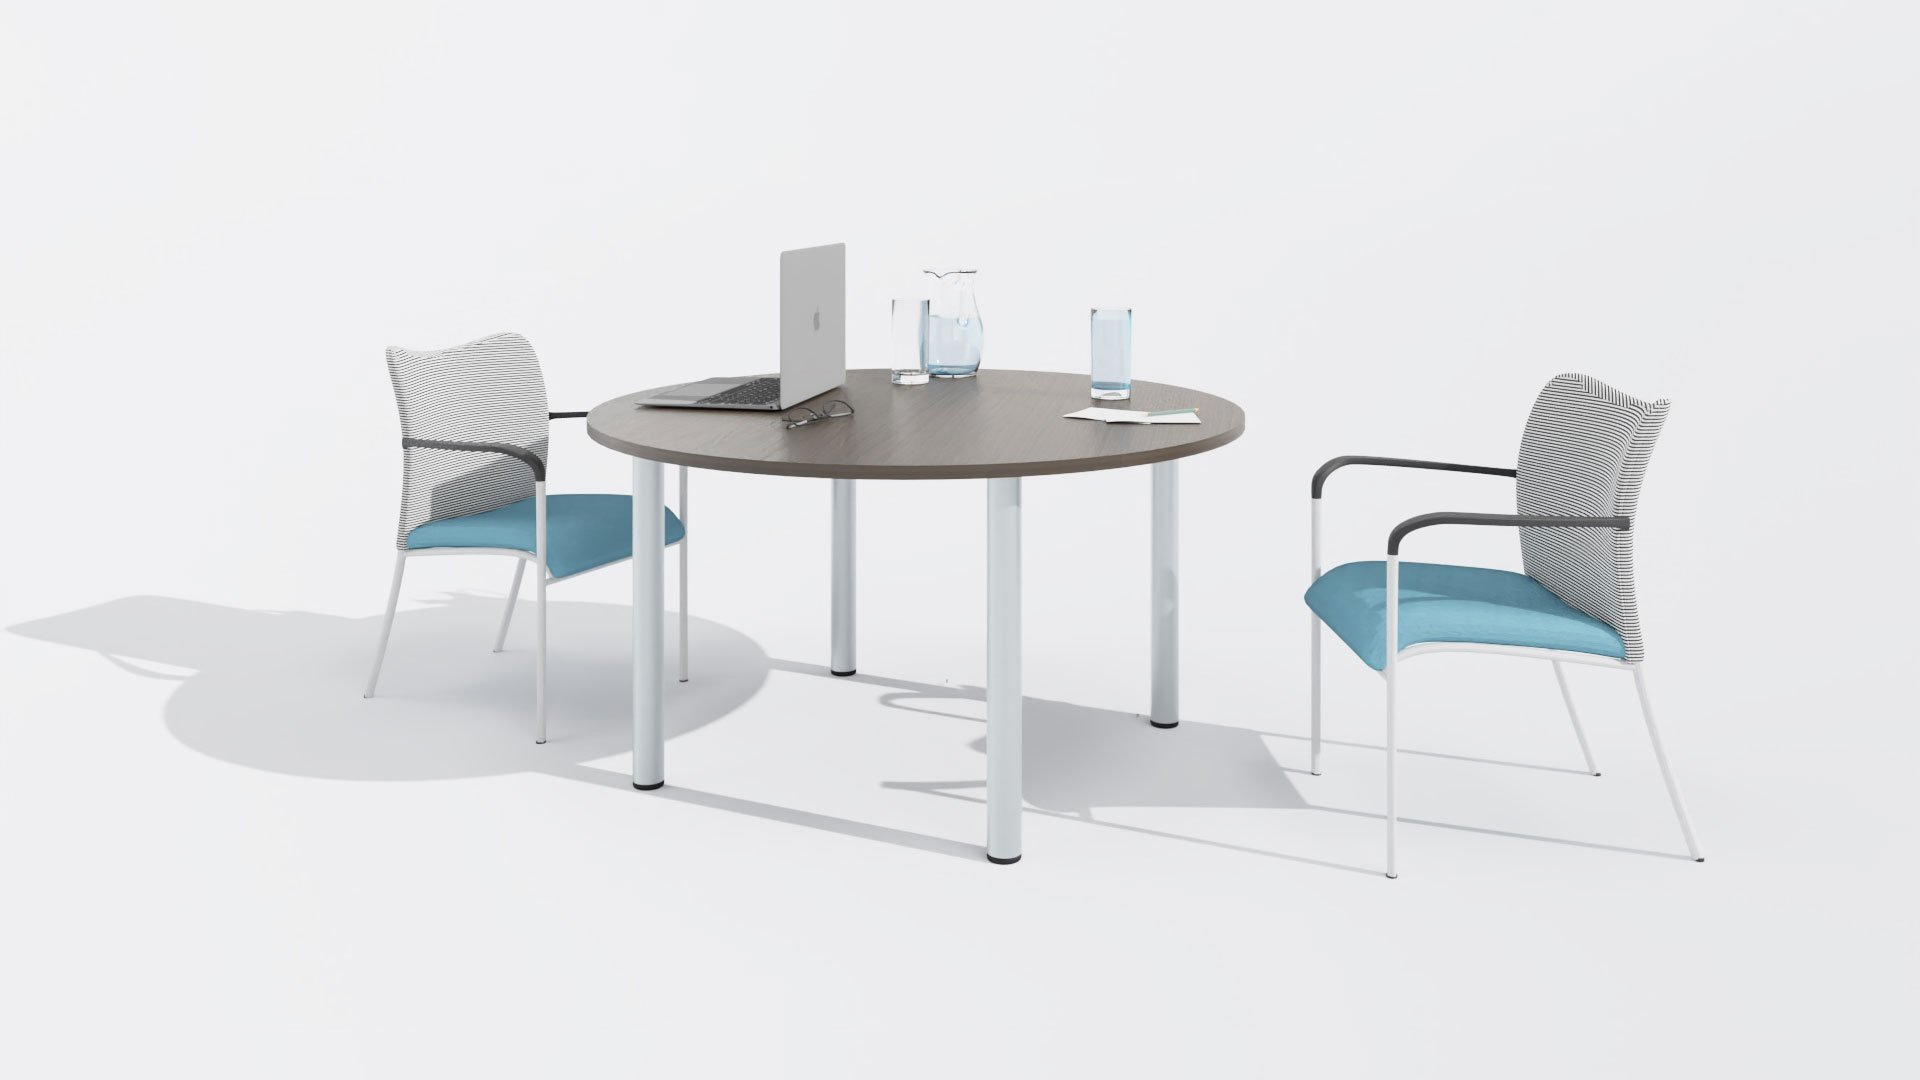 Round Meeting Table 1673 with chairs